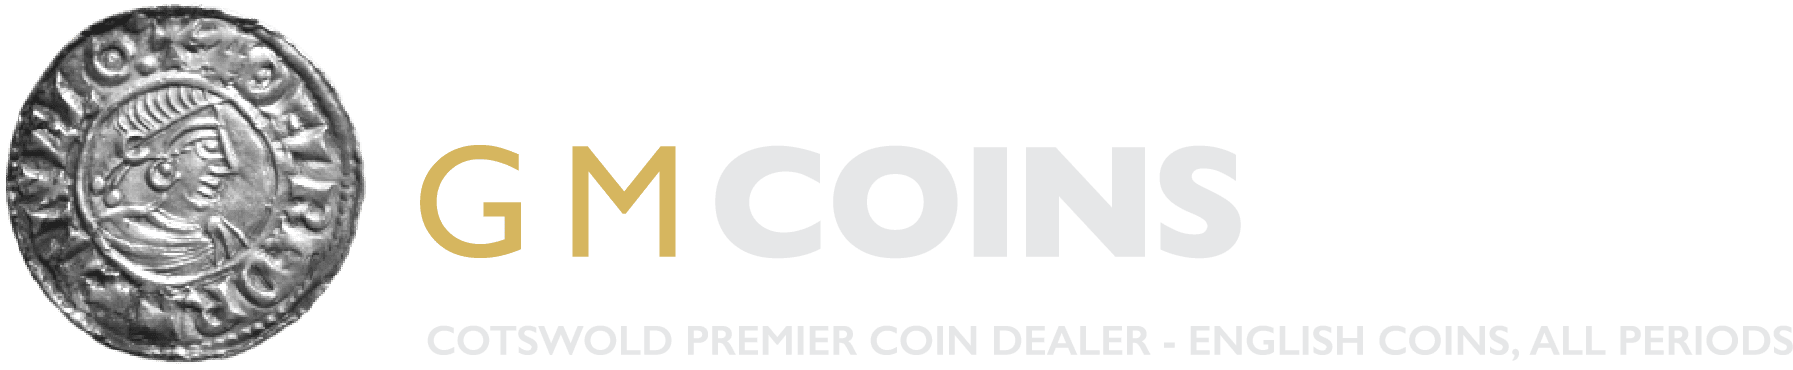 GM Coins - Trading in Gloucestershire and beyond since 2000